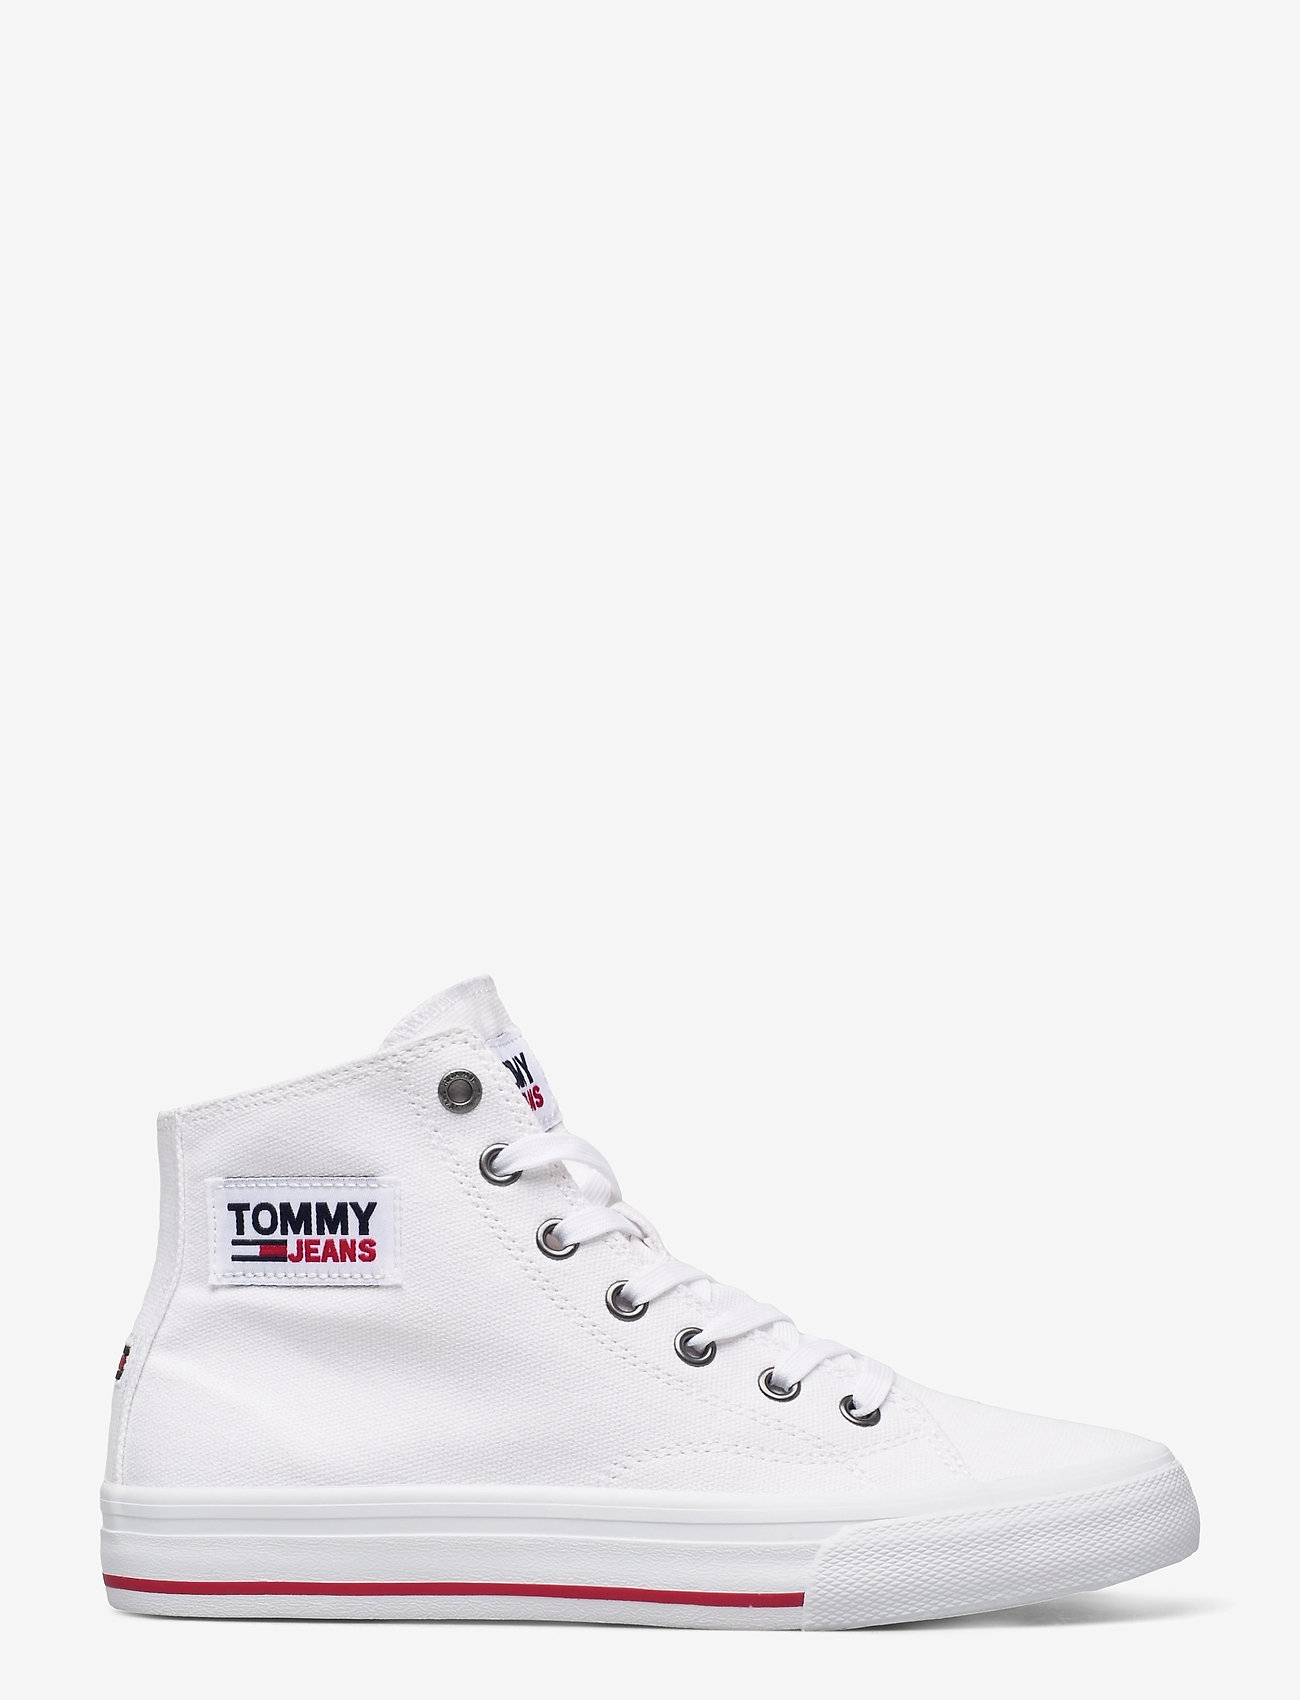 Tommy Hilfiger - TOMMY JEANS MIDCUT VULC - high top sneakers - white - 1